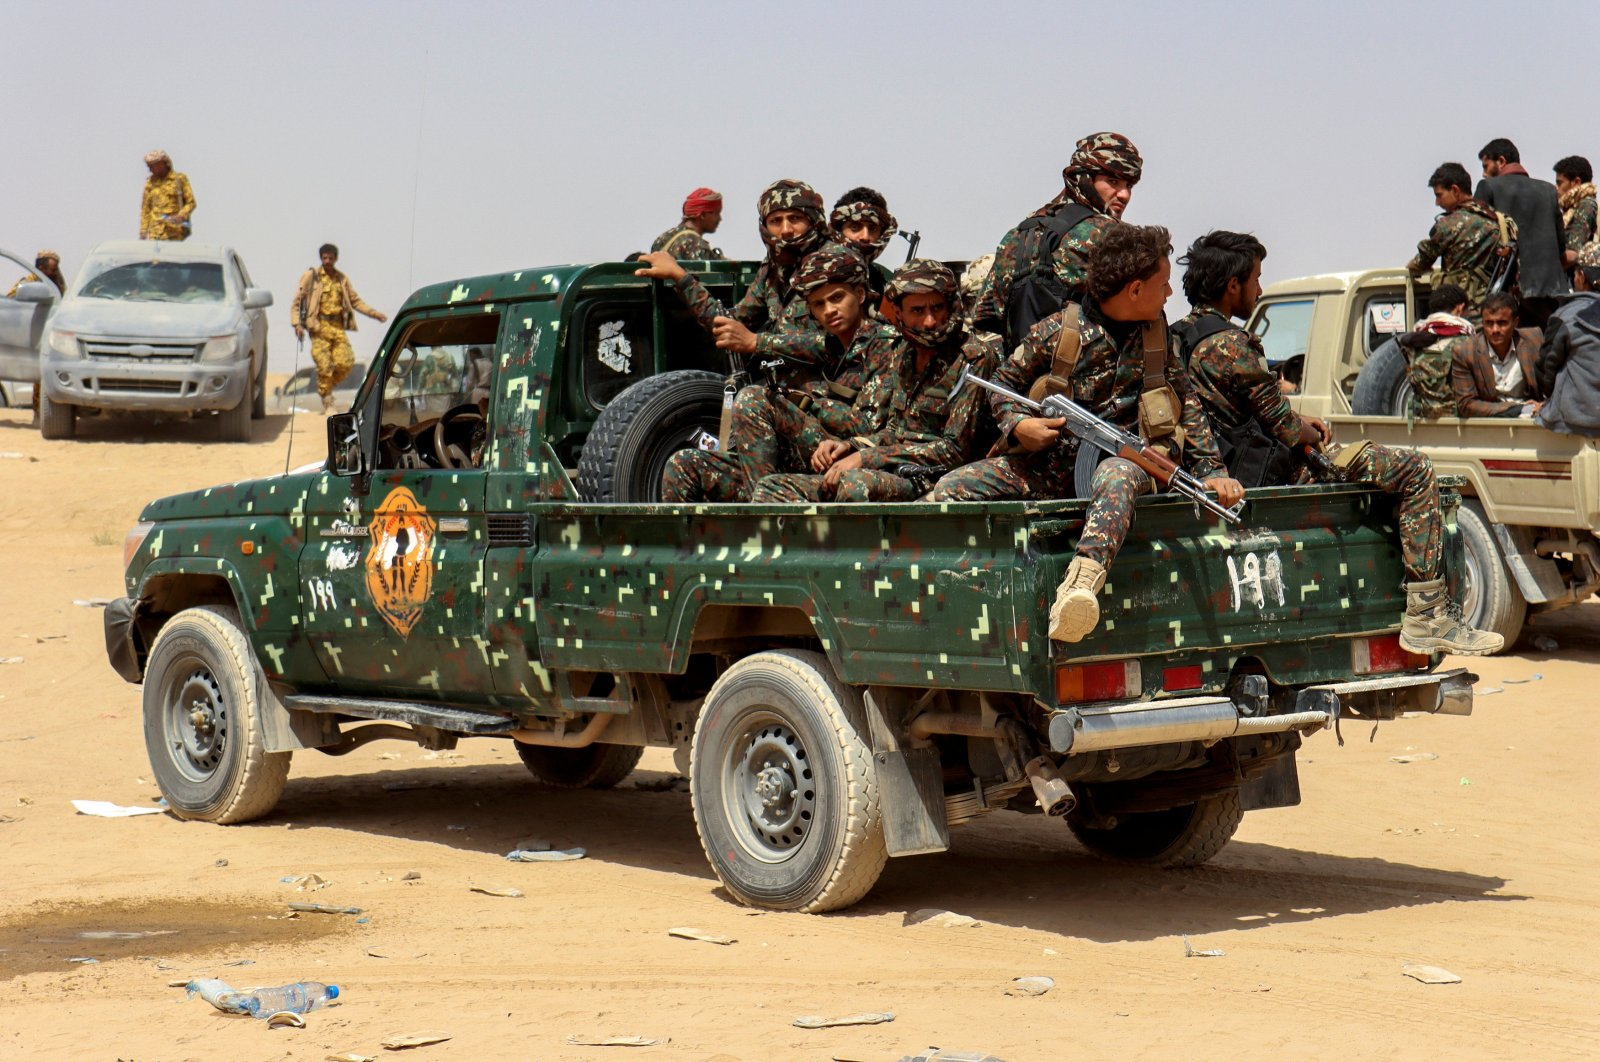 Soldiers ride on the back of a patrol truck during the burial of Brig. Gen. Abdul-Ghani Shaalan, commander of the Special Security Forces in Marib who was killed in recent fighting with Houthi fighters in Marib, Yemen Feb. 28, 2021. (Reuters Photo)